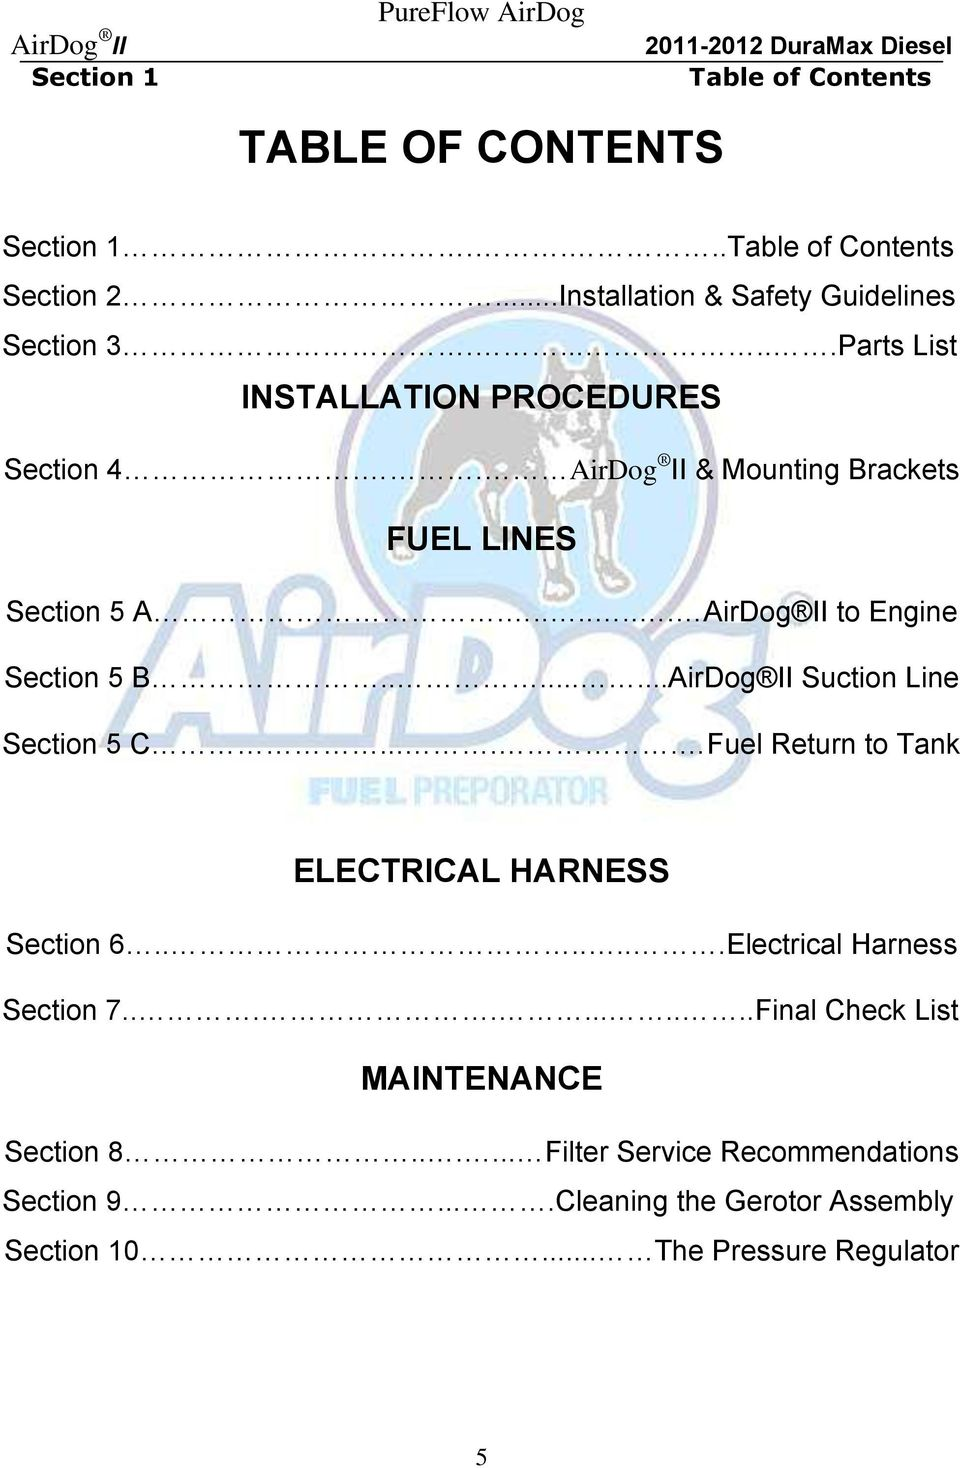 .......AirDog II Suction Line Section 5 C..... Fuel Return to Tank ELECTRICAL HARNESS Section 6.......Electrical Harness Section 7.